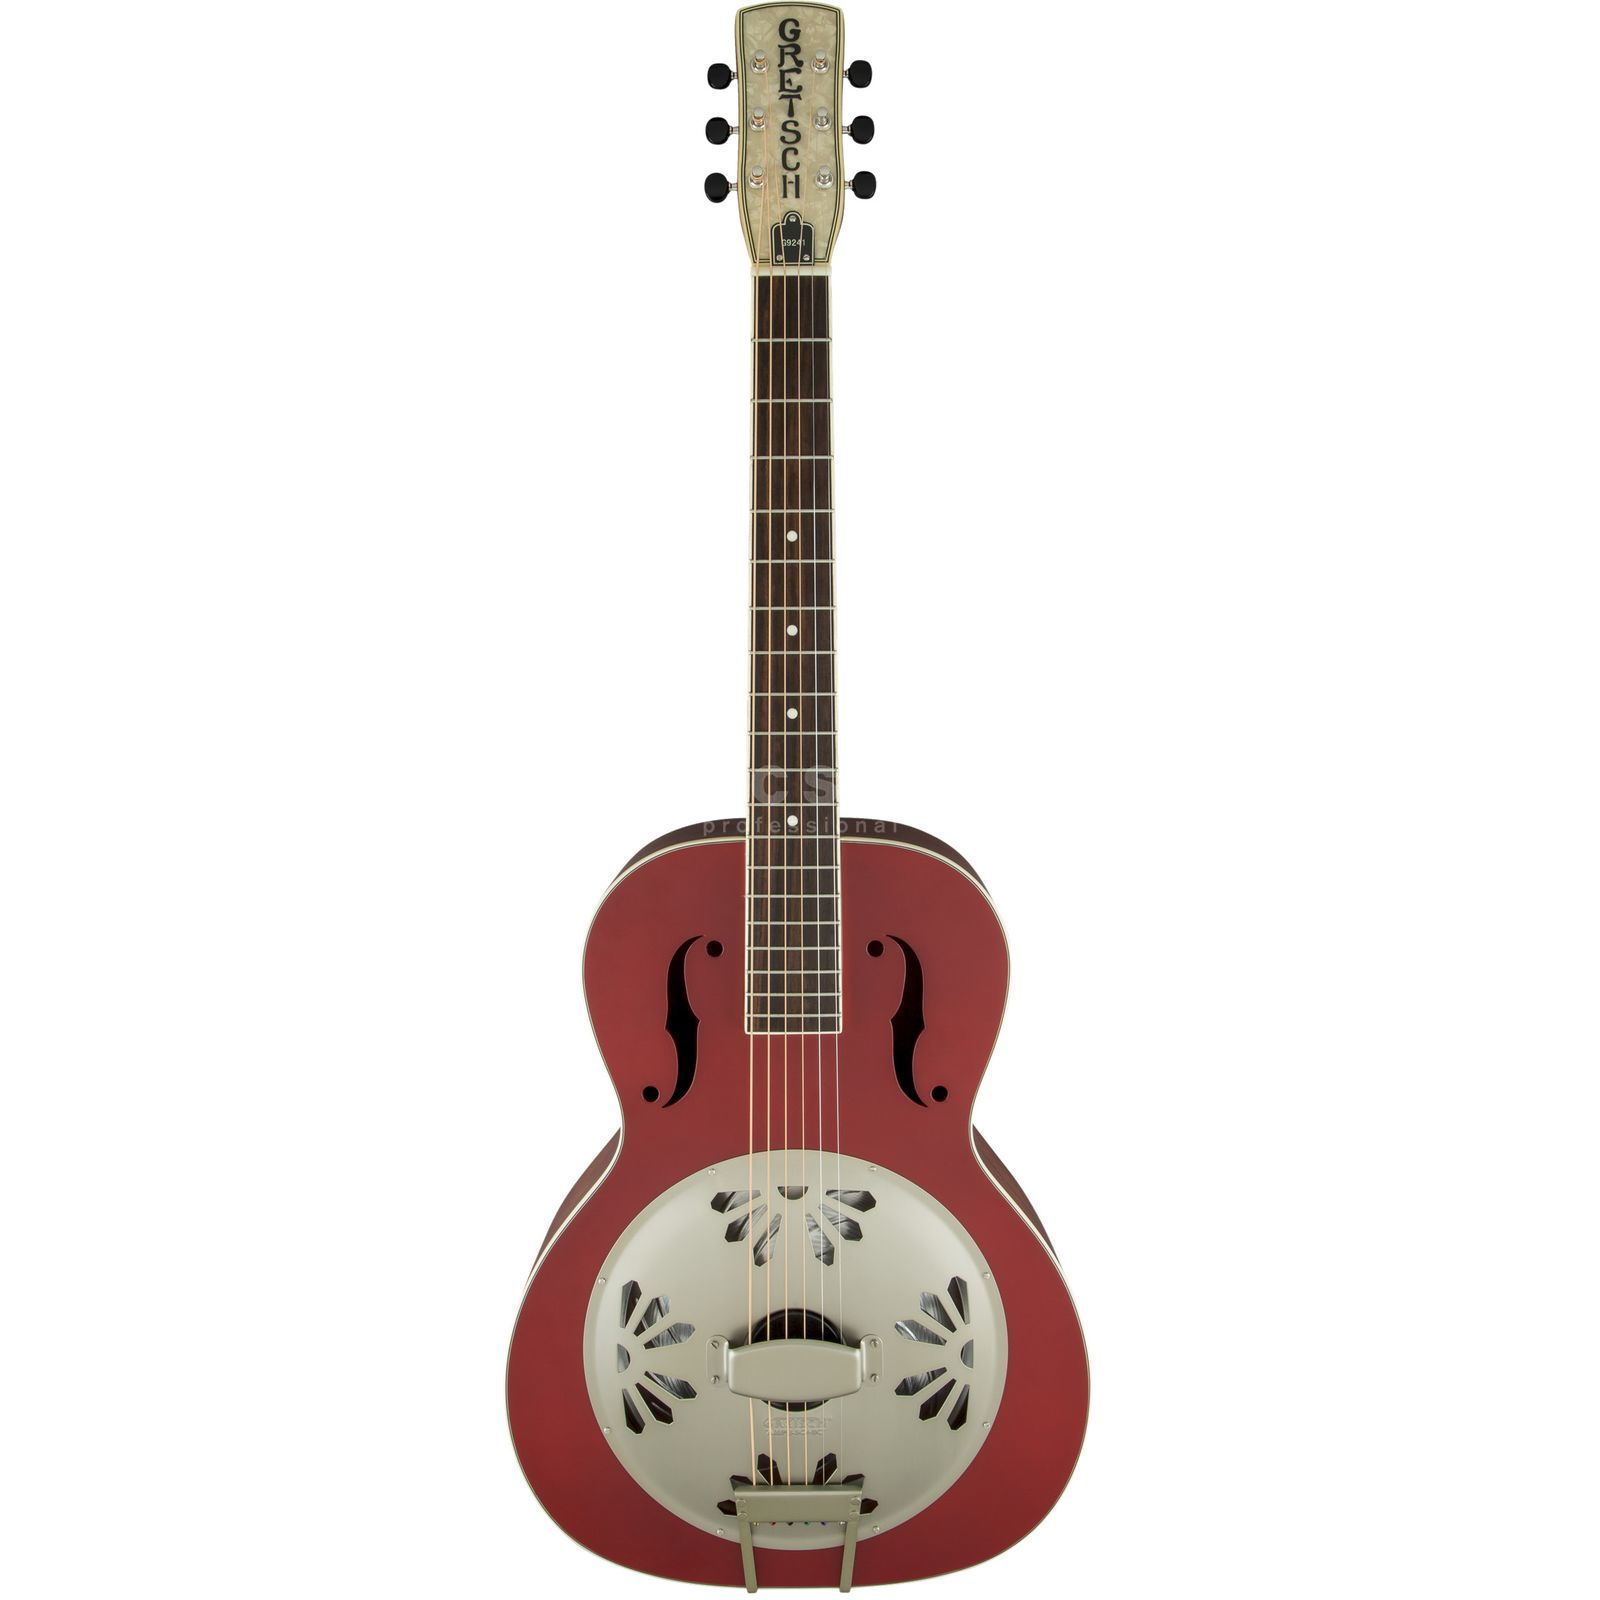 Gretsch G9241 Alligator Biscuit Round Neck Chieftain Red Produktbillede